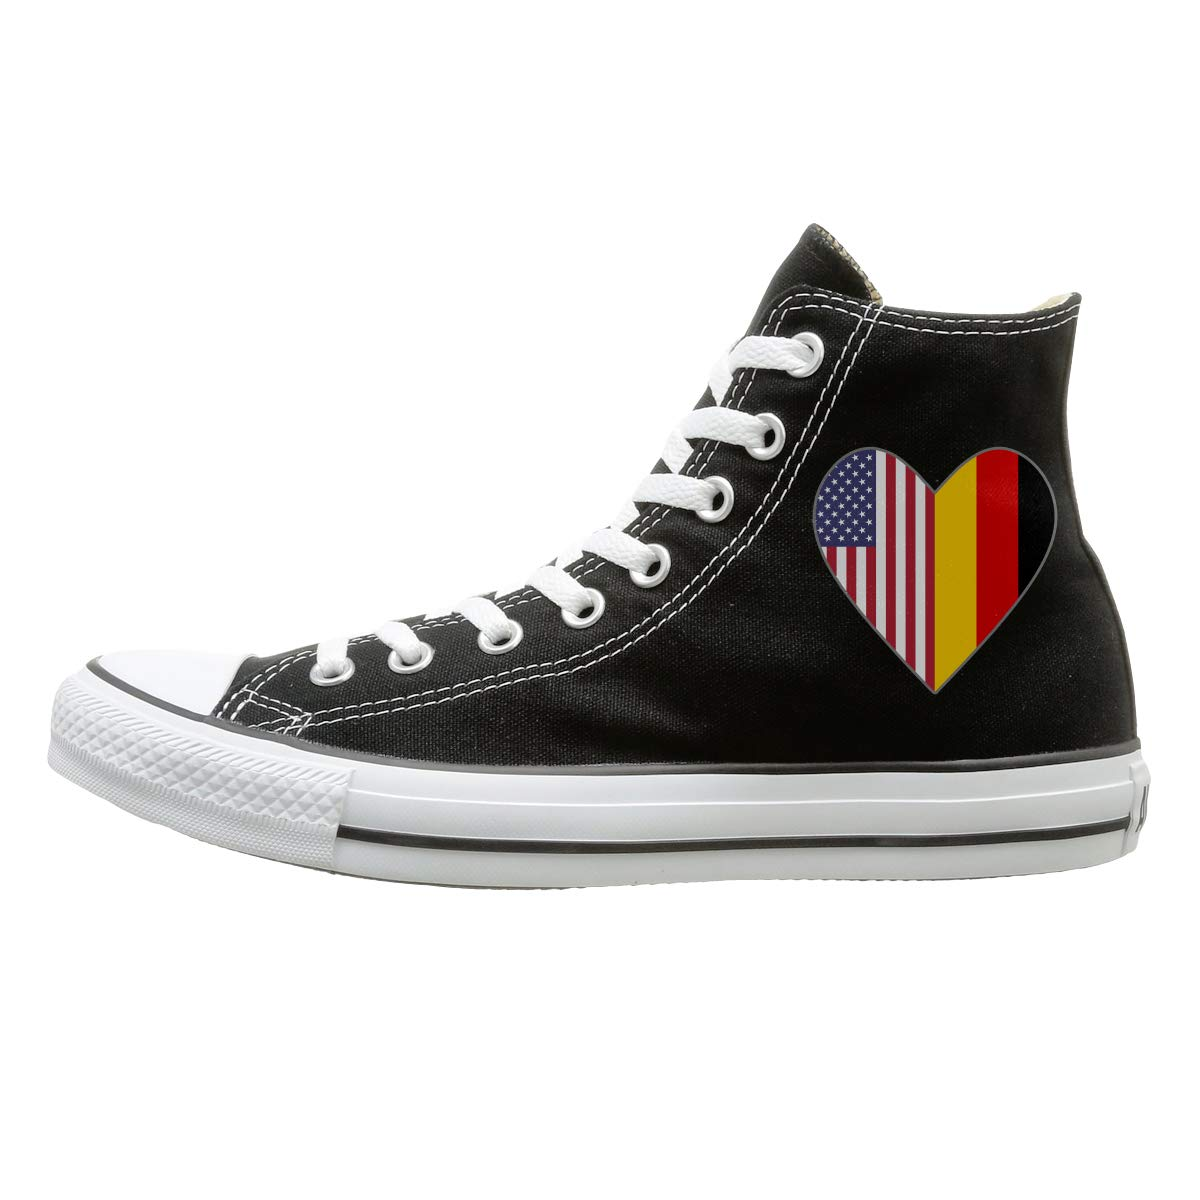 Half German Flag USA Flag Love Heart Fashion Canvas Shoes Sneakers Men's Women's High-Top Casual Shoes for Skateboarding Outdoor Sports by WI8Q-1